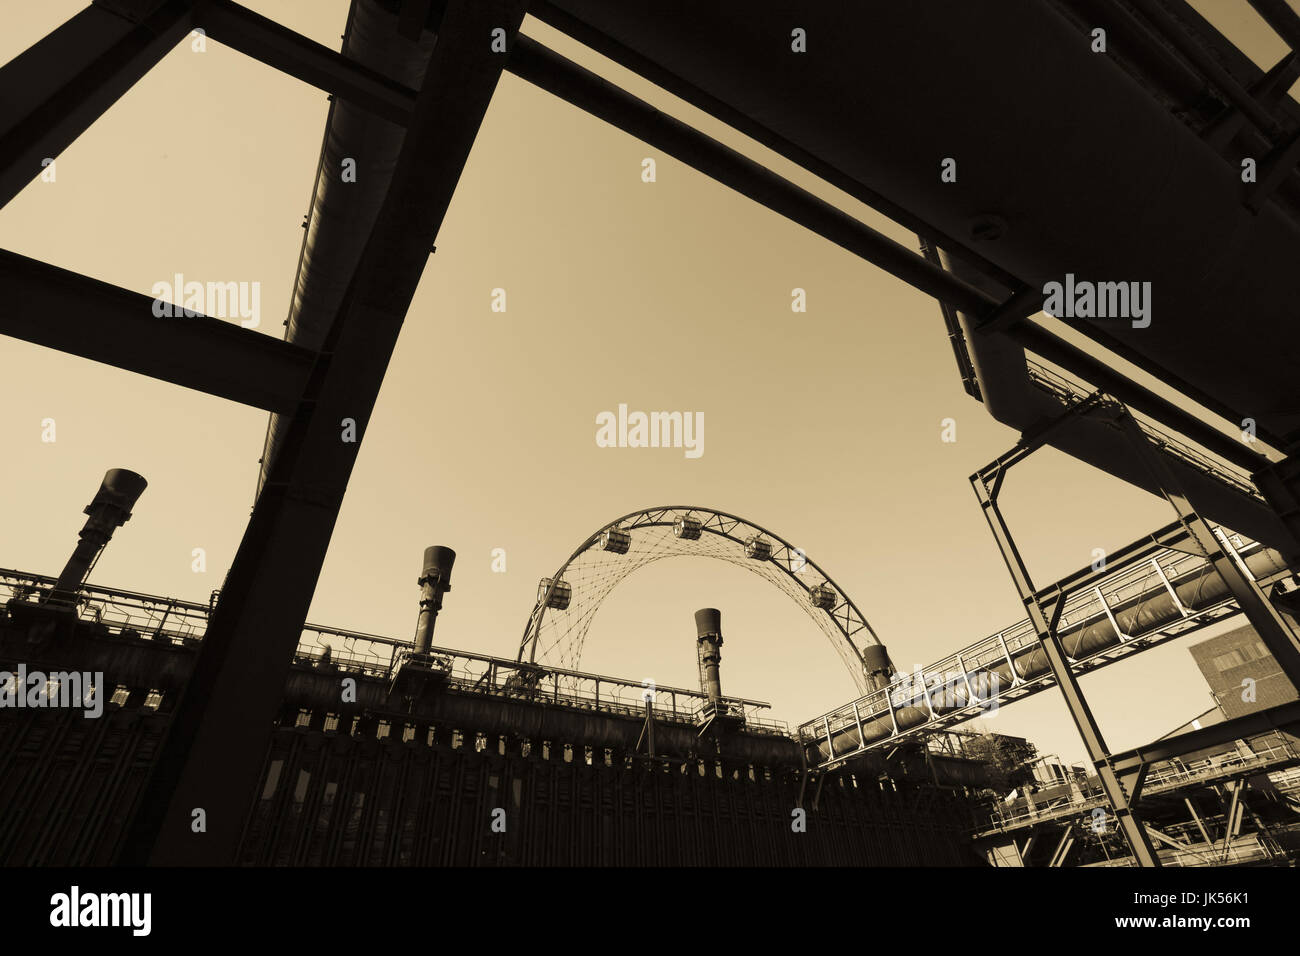 Germany, Nordrhein-Westfalen, Ruhr Basin, Essen, World Heritage Zollverein former coal mine, Coking Plant, - Stock Image